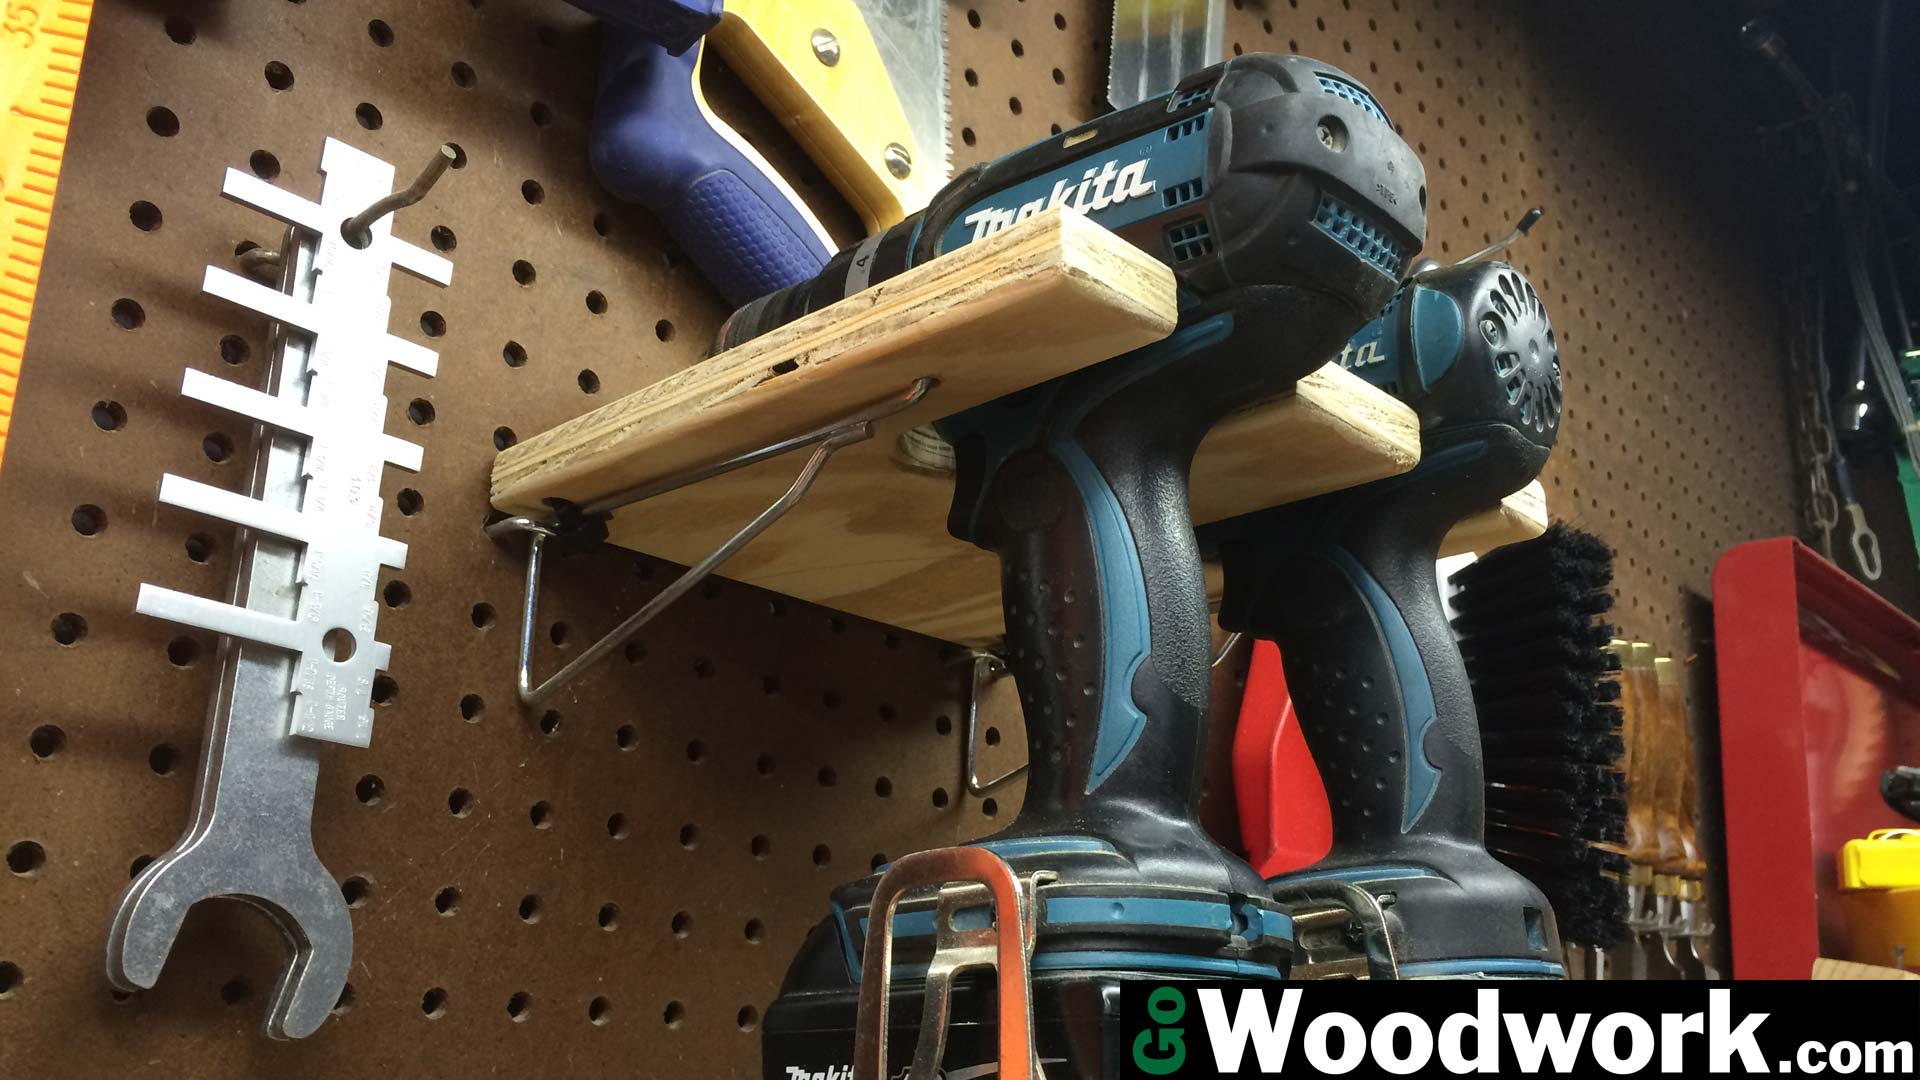 Pegboard Drill Holder – Go Woodwork